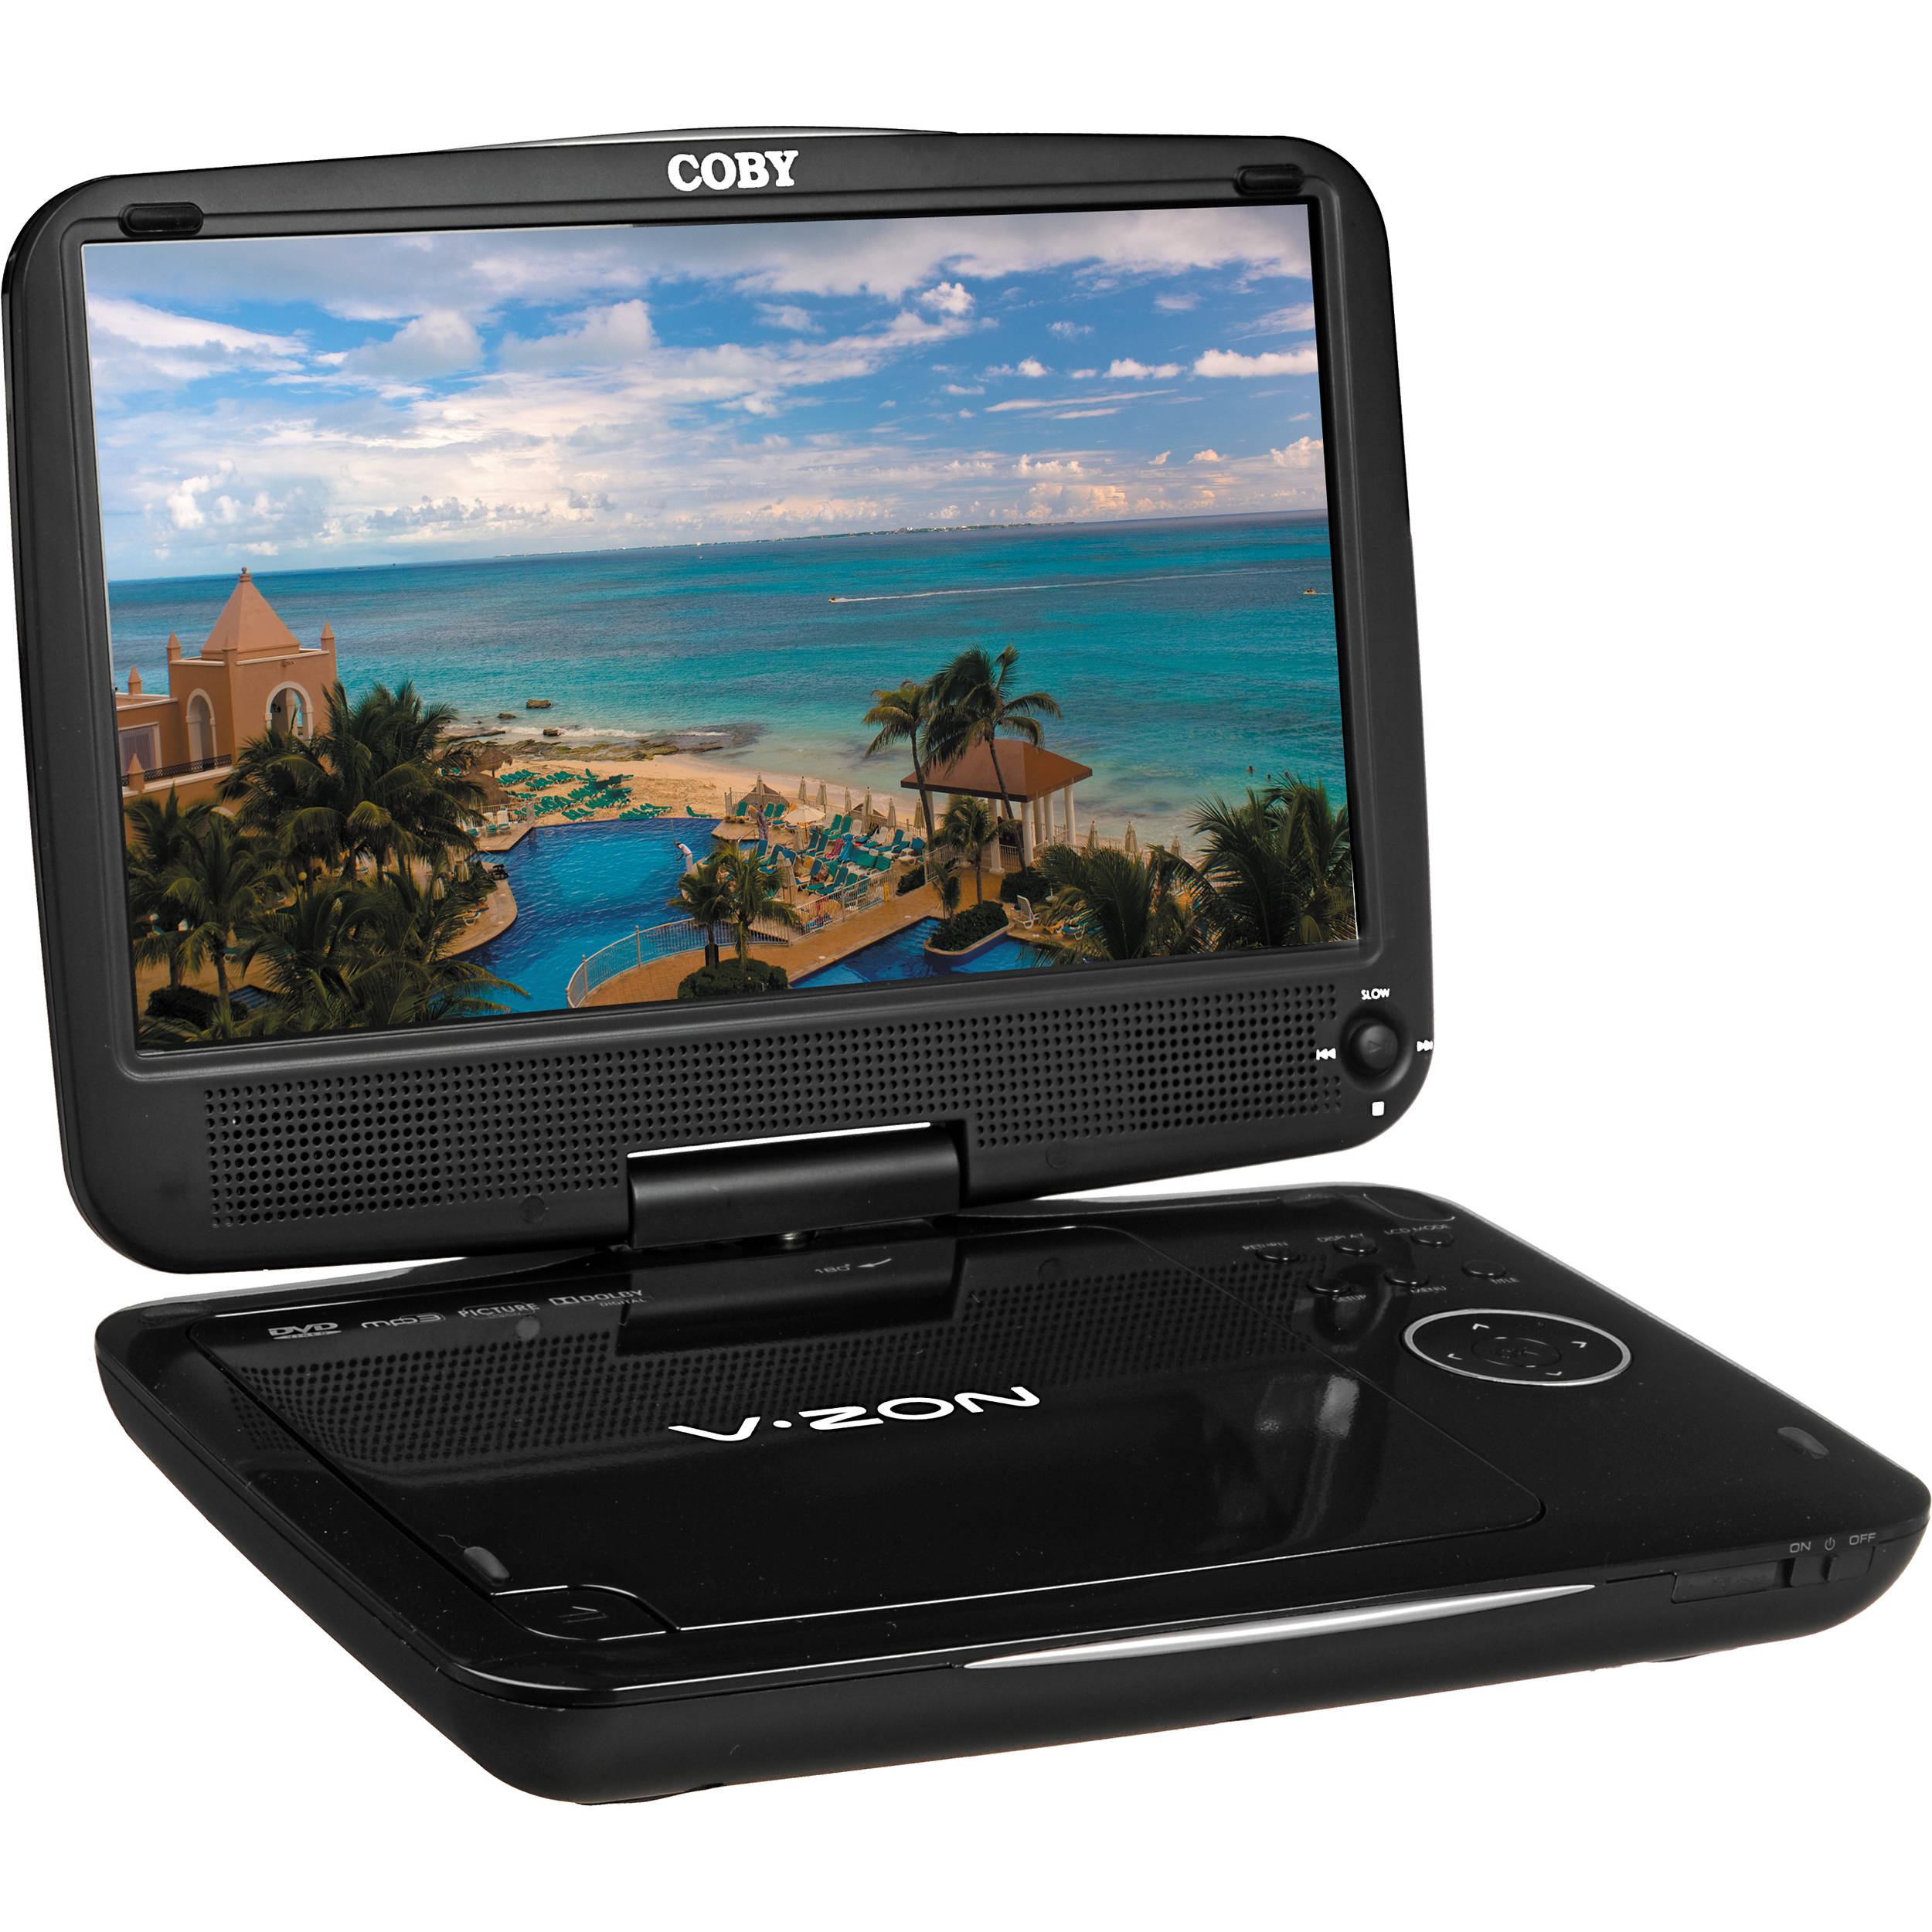 coby tfdvd9109 portable dvd player tfdvd9109 b h photo video. Black Bedroom Furniture Sets. Home Design Ideas